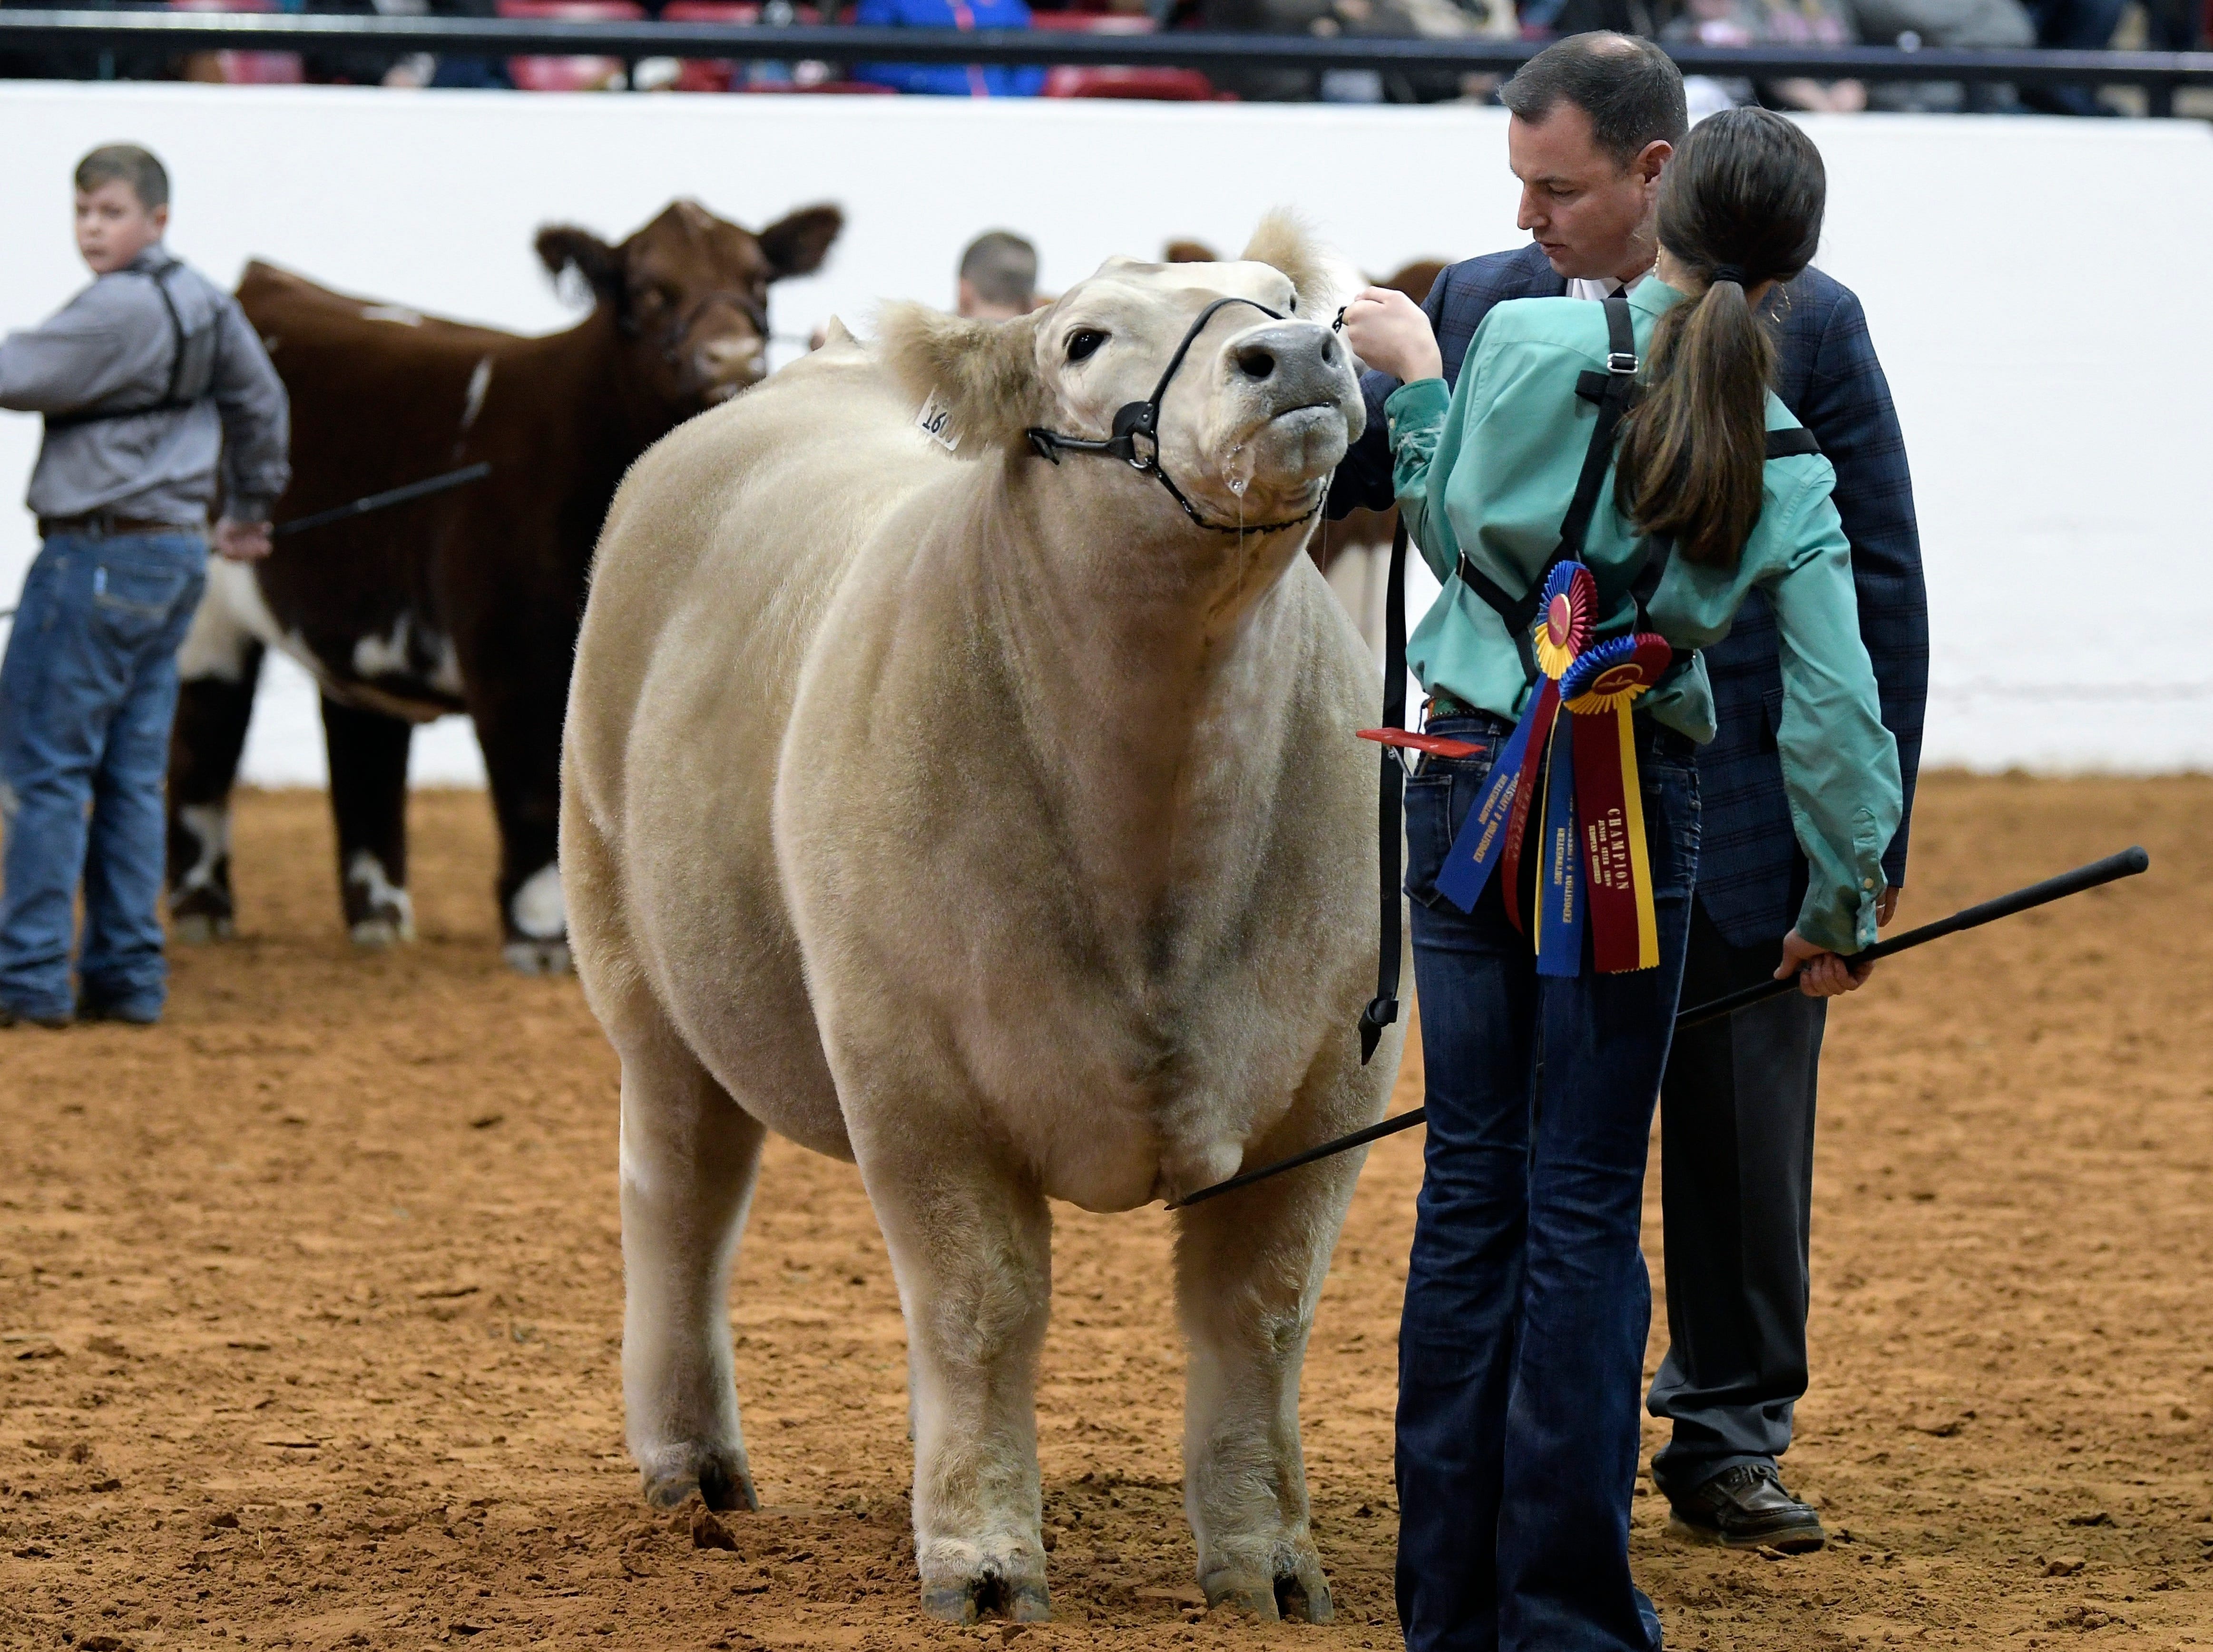 Aven Horn,front right, shows her steer Bentley to Judge Chris Mullinix during the Grand Champion steer round of the Stock Show at Will Rogers Memorial Center in Fort Worth, Texas, Friday, Feb. 8, 2019. Bentley was named Grand Champion steer.